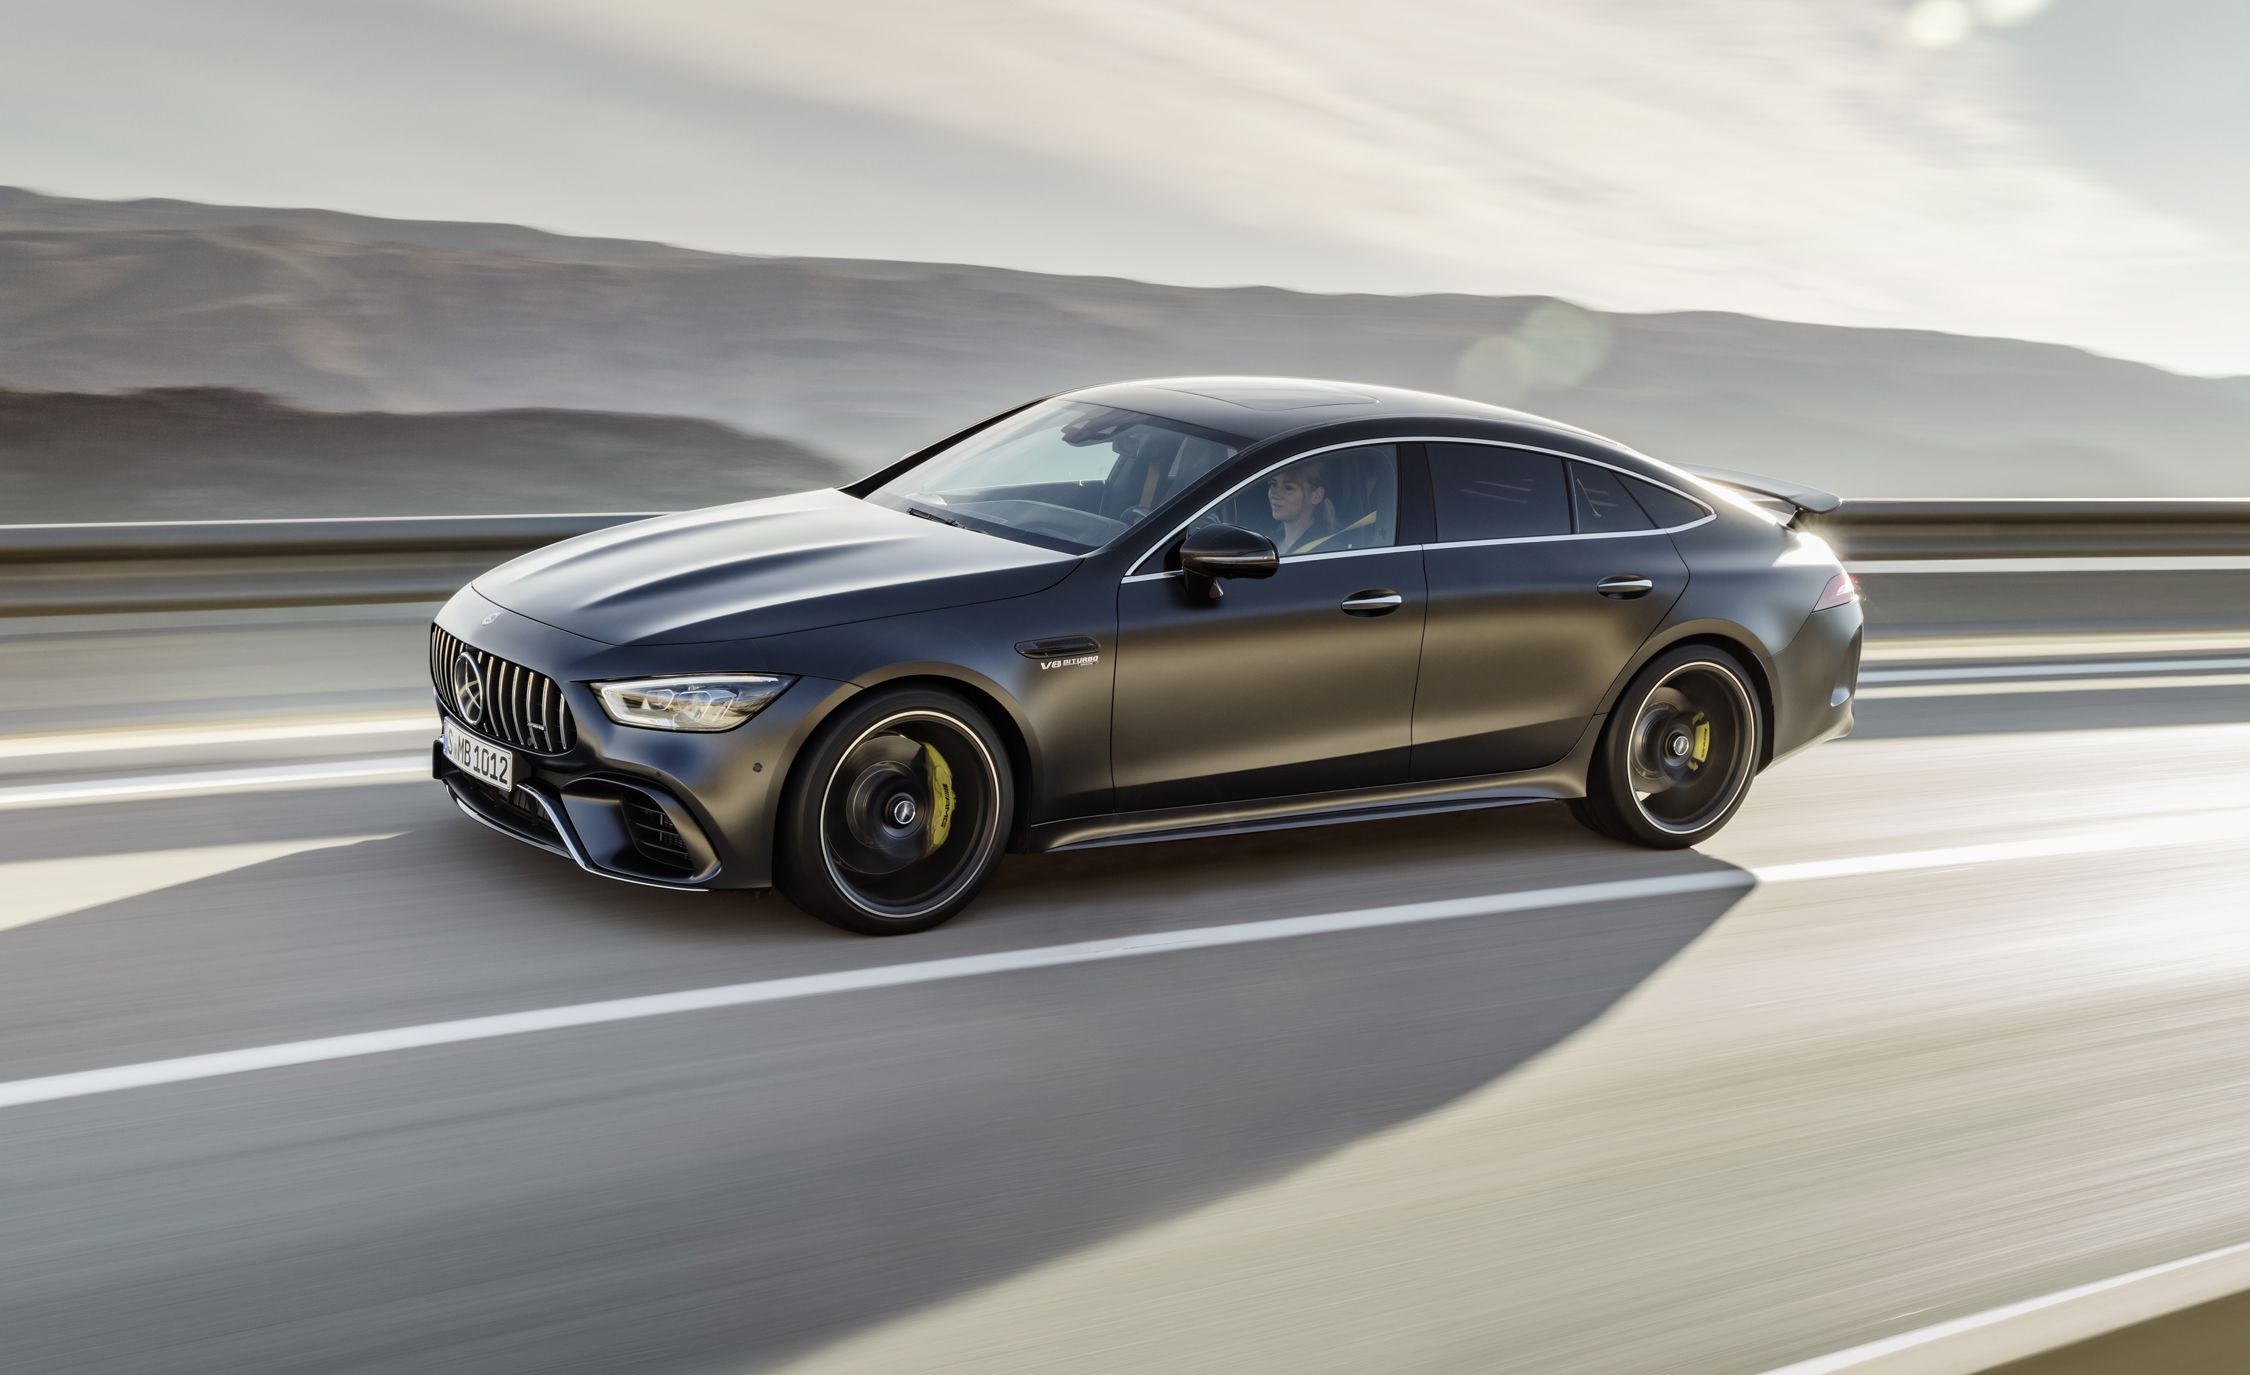 2019-mercedes-amg-gt-4-door-coupe-officially-unveiled-packs-up-to-630-hp-news-car-and-driver-photo-703884-s-original.jpg